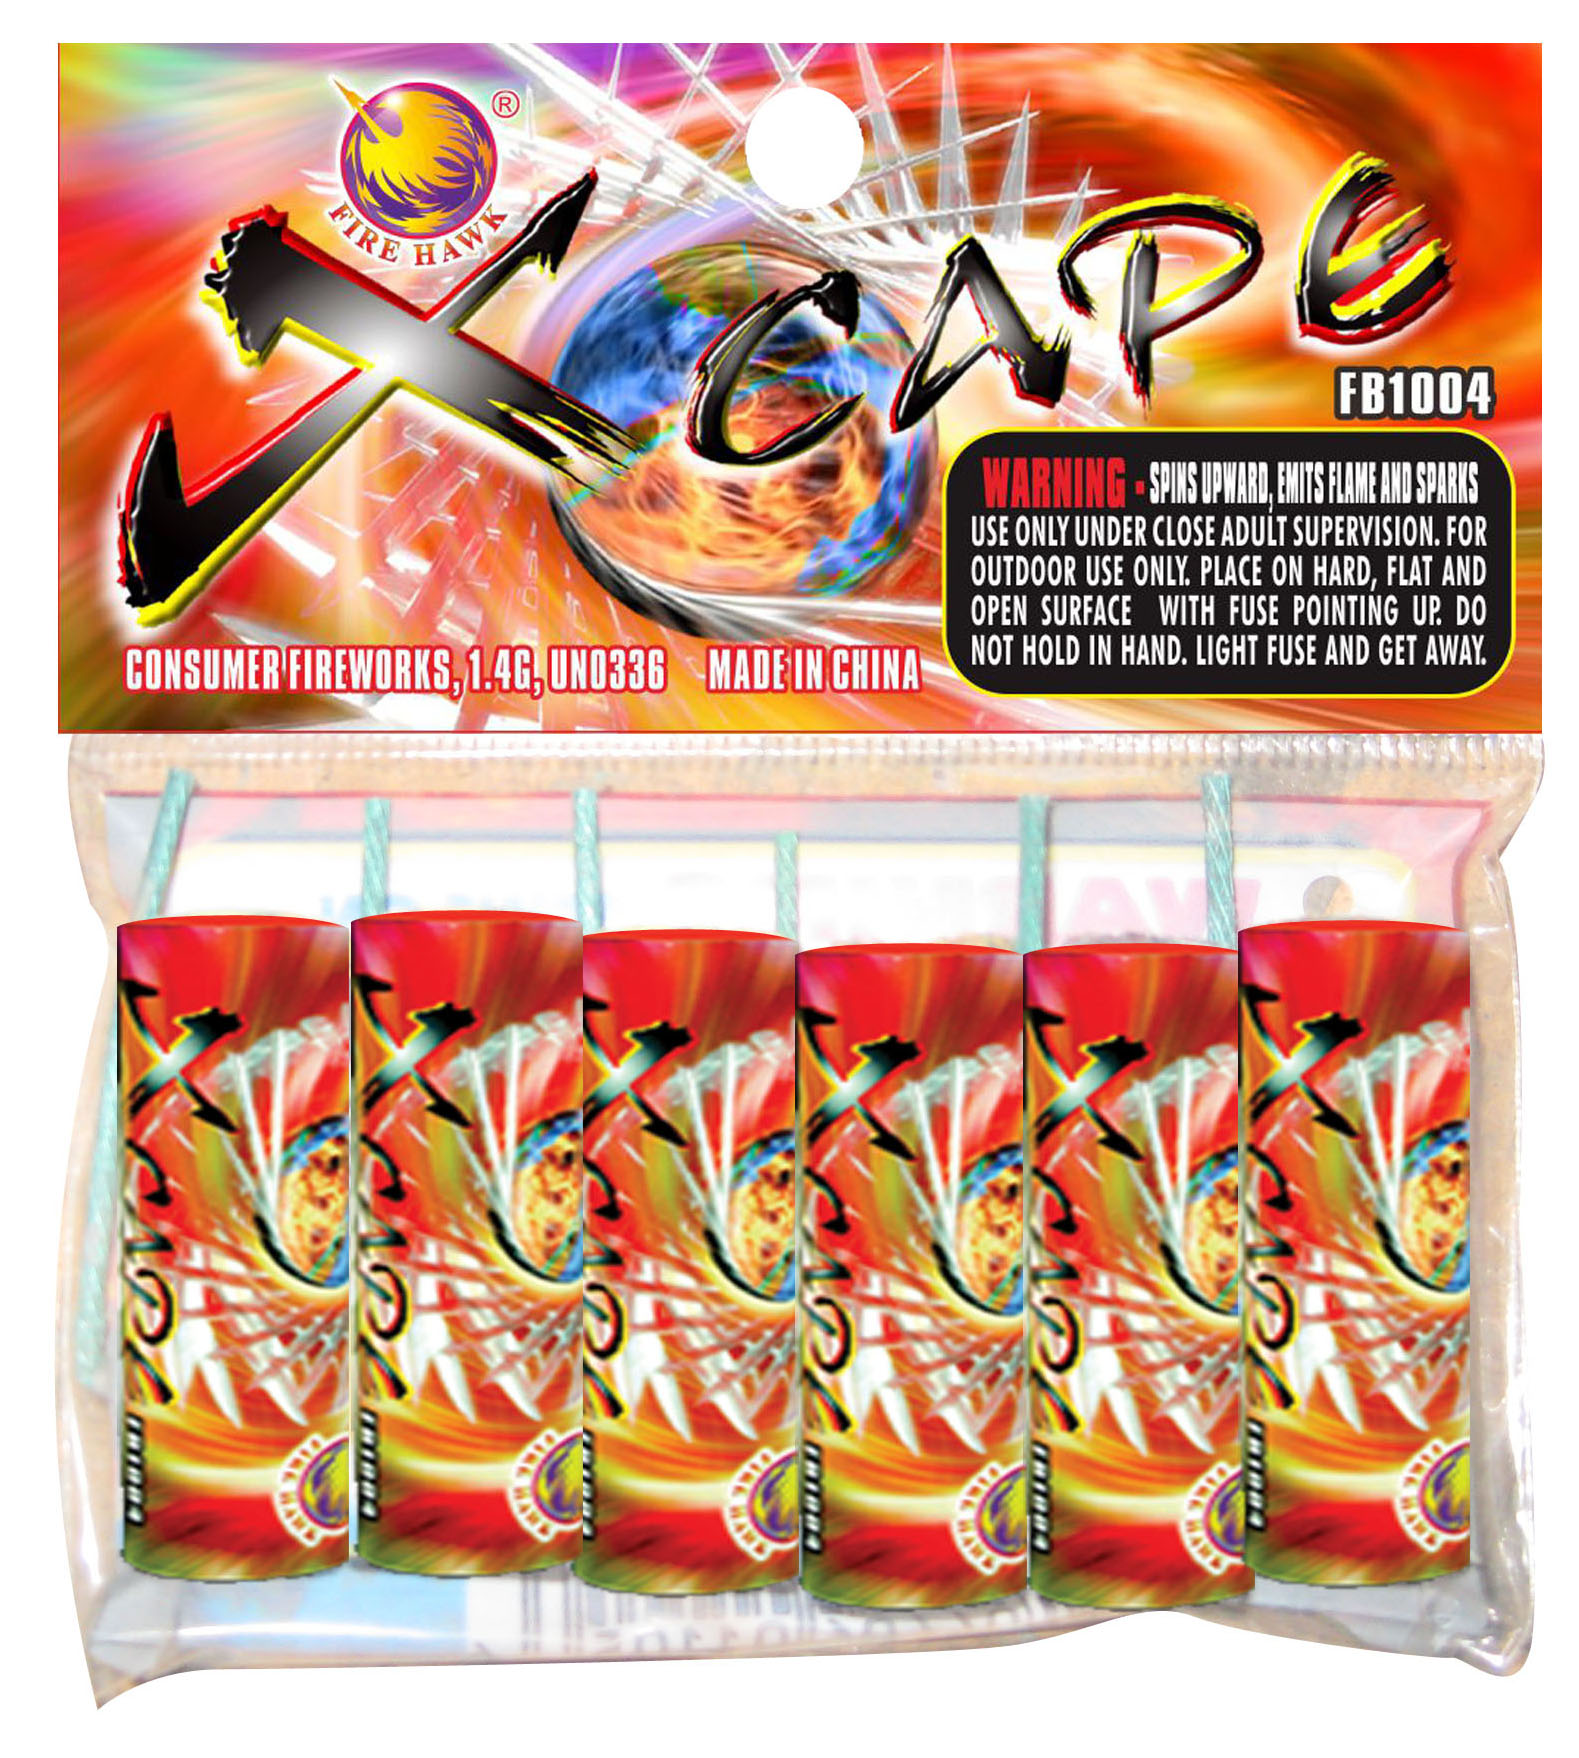 FB1004 Xcape header card